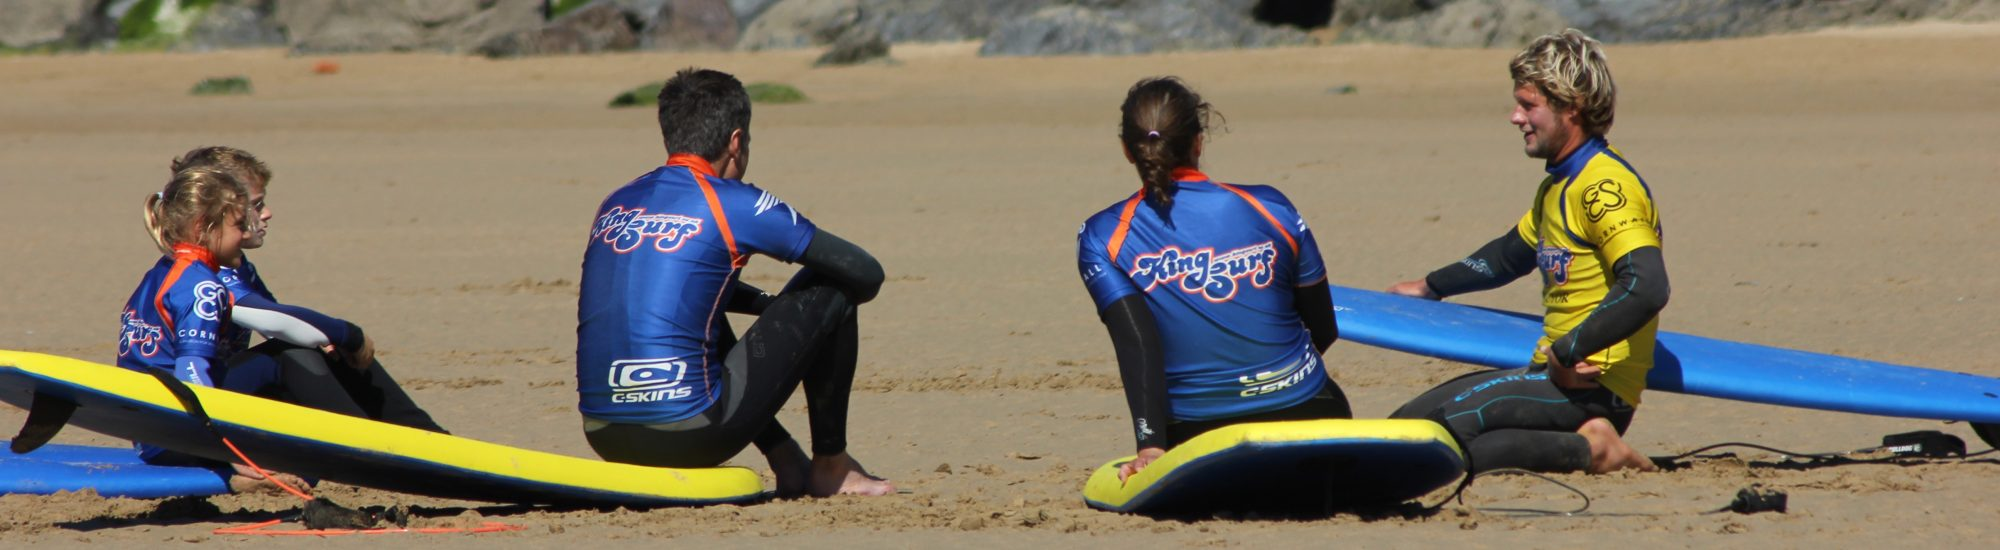 IMG 7382 copy 2000x550 - Family Surf Lessons in Cornwall